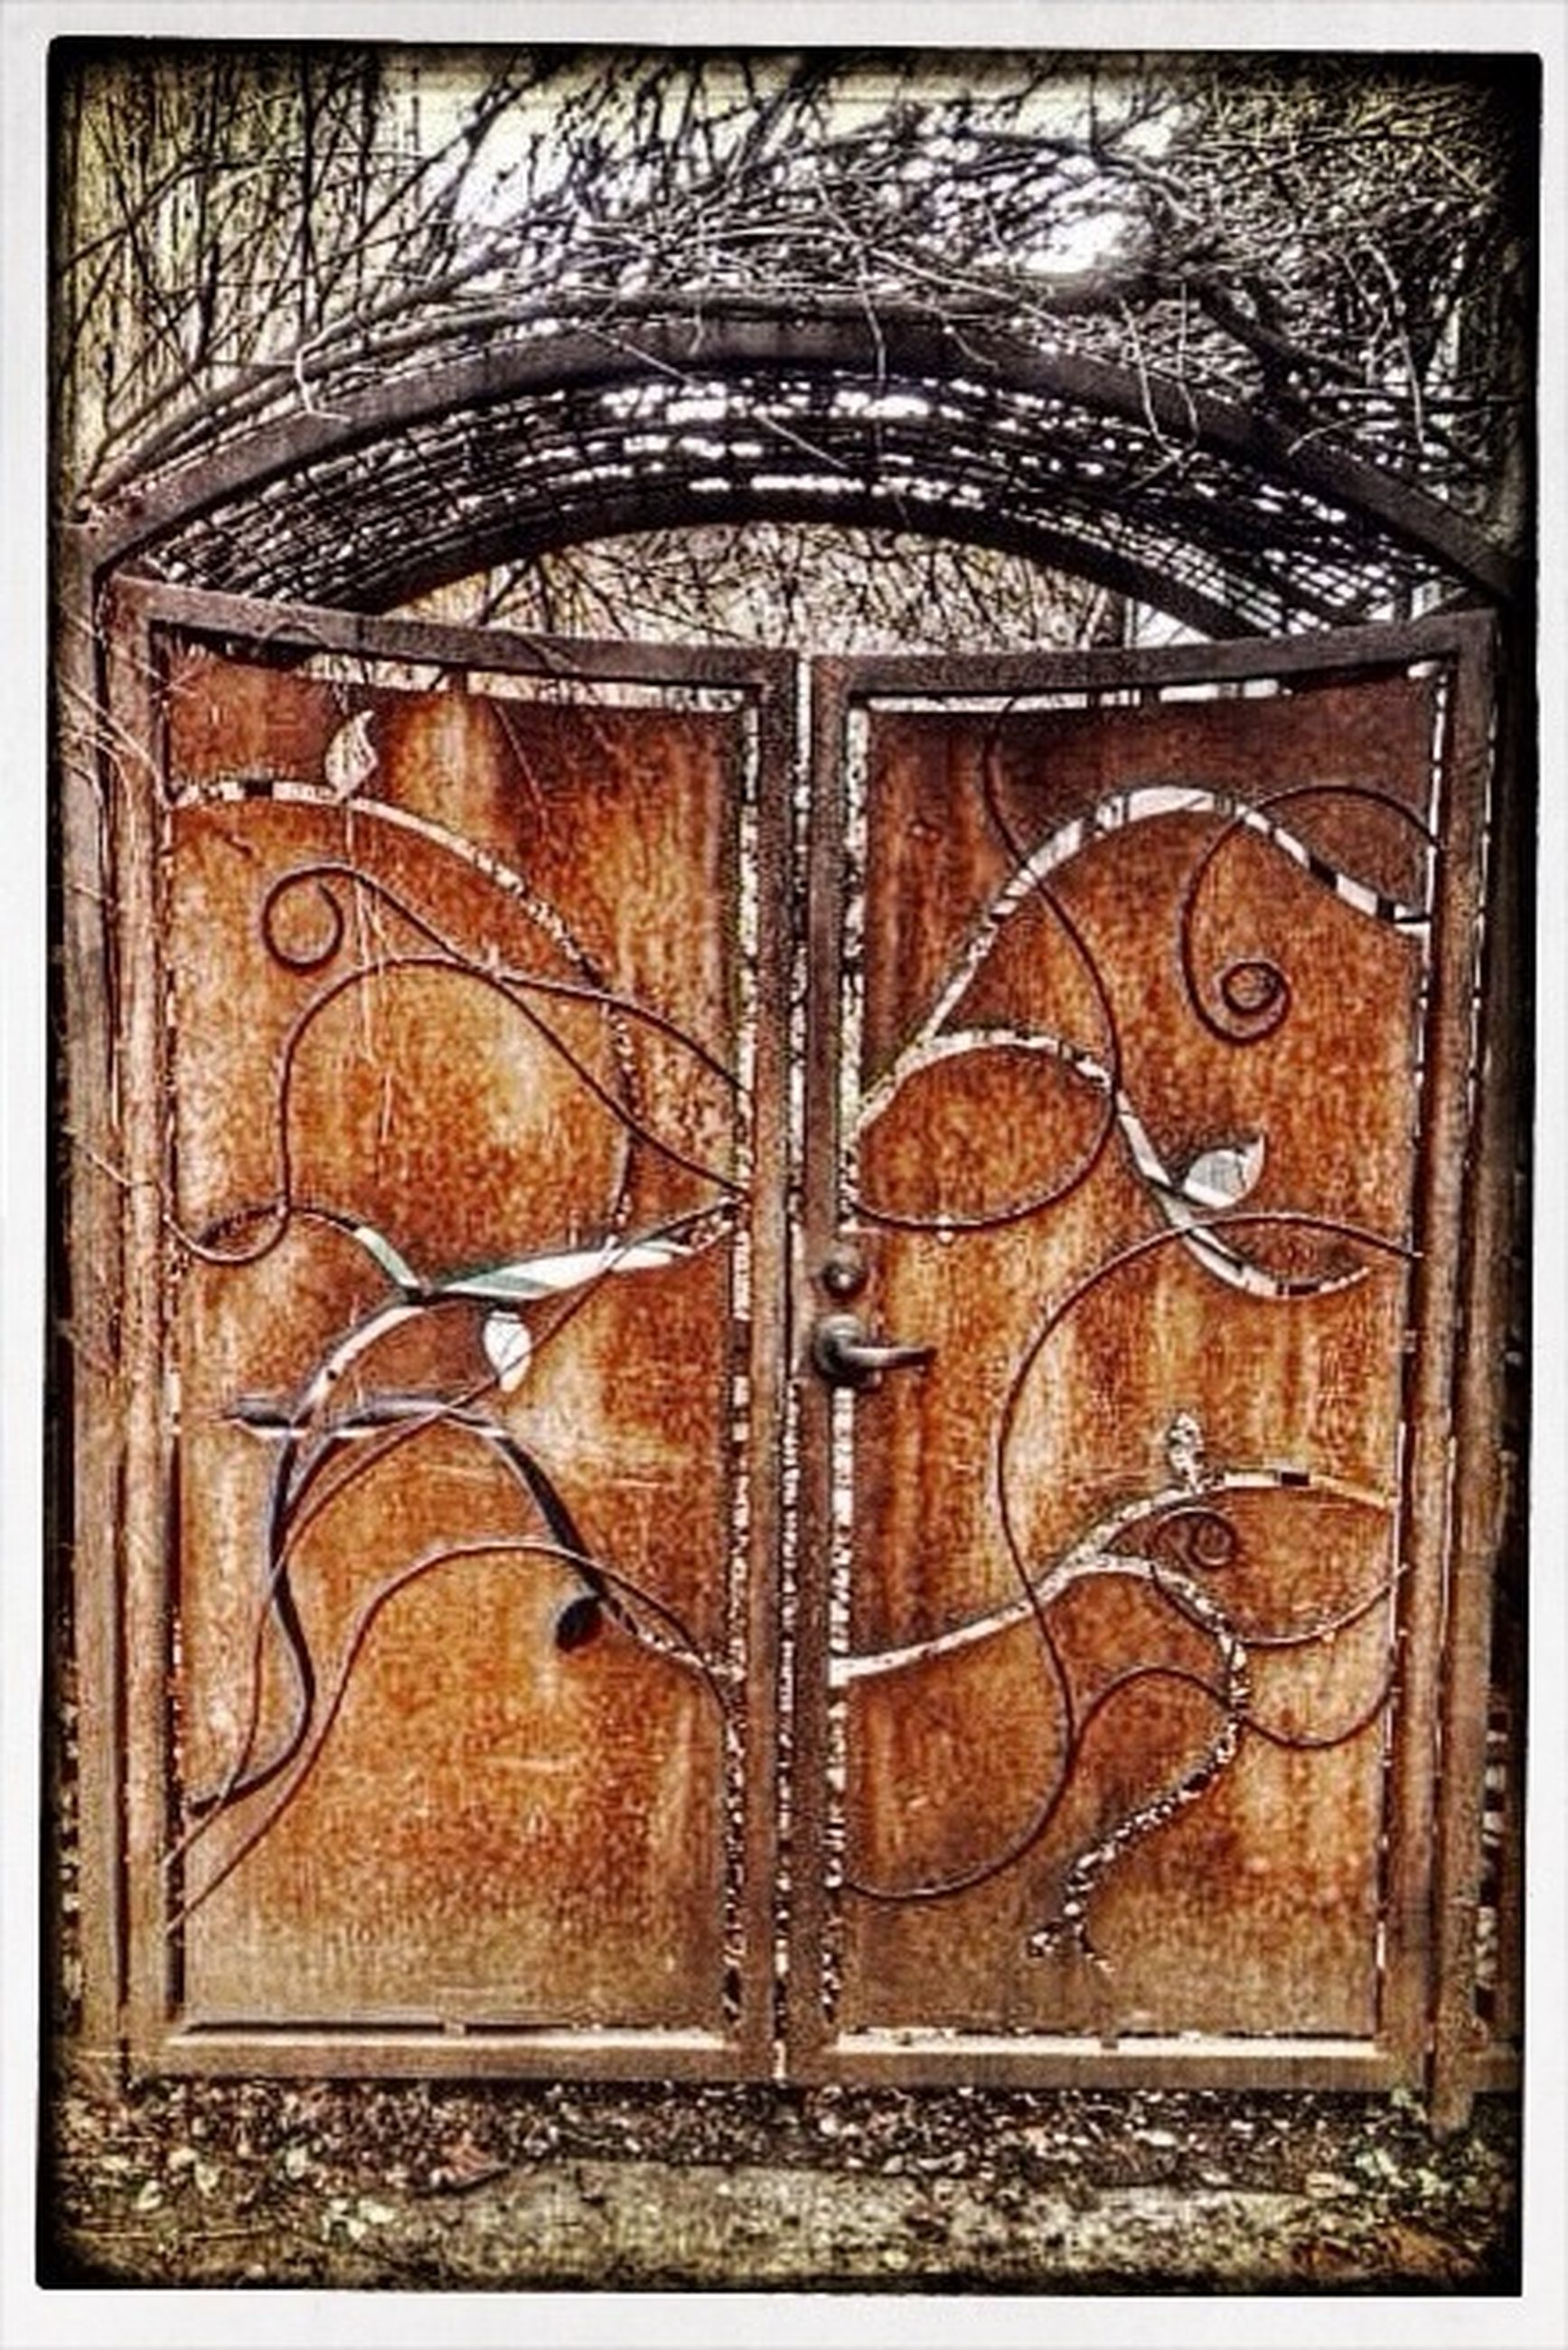 transfer print, art and craft, art, door, auto post production filter, close-up, wood - material, creativity, built structure, wooden, architecture, old, design, wall - building feature, metal, closed, pattern, full frame, building exterior, weathered